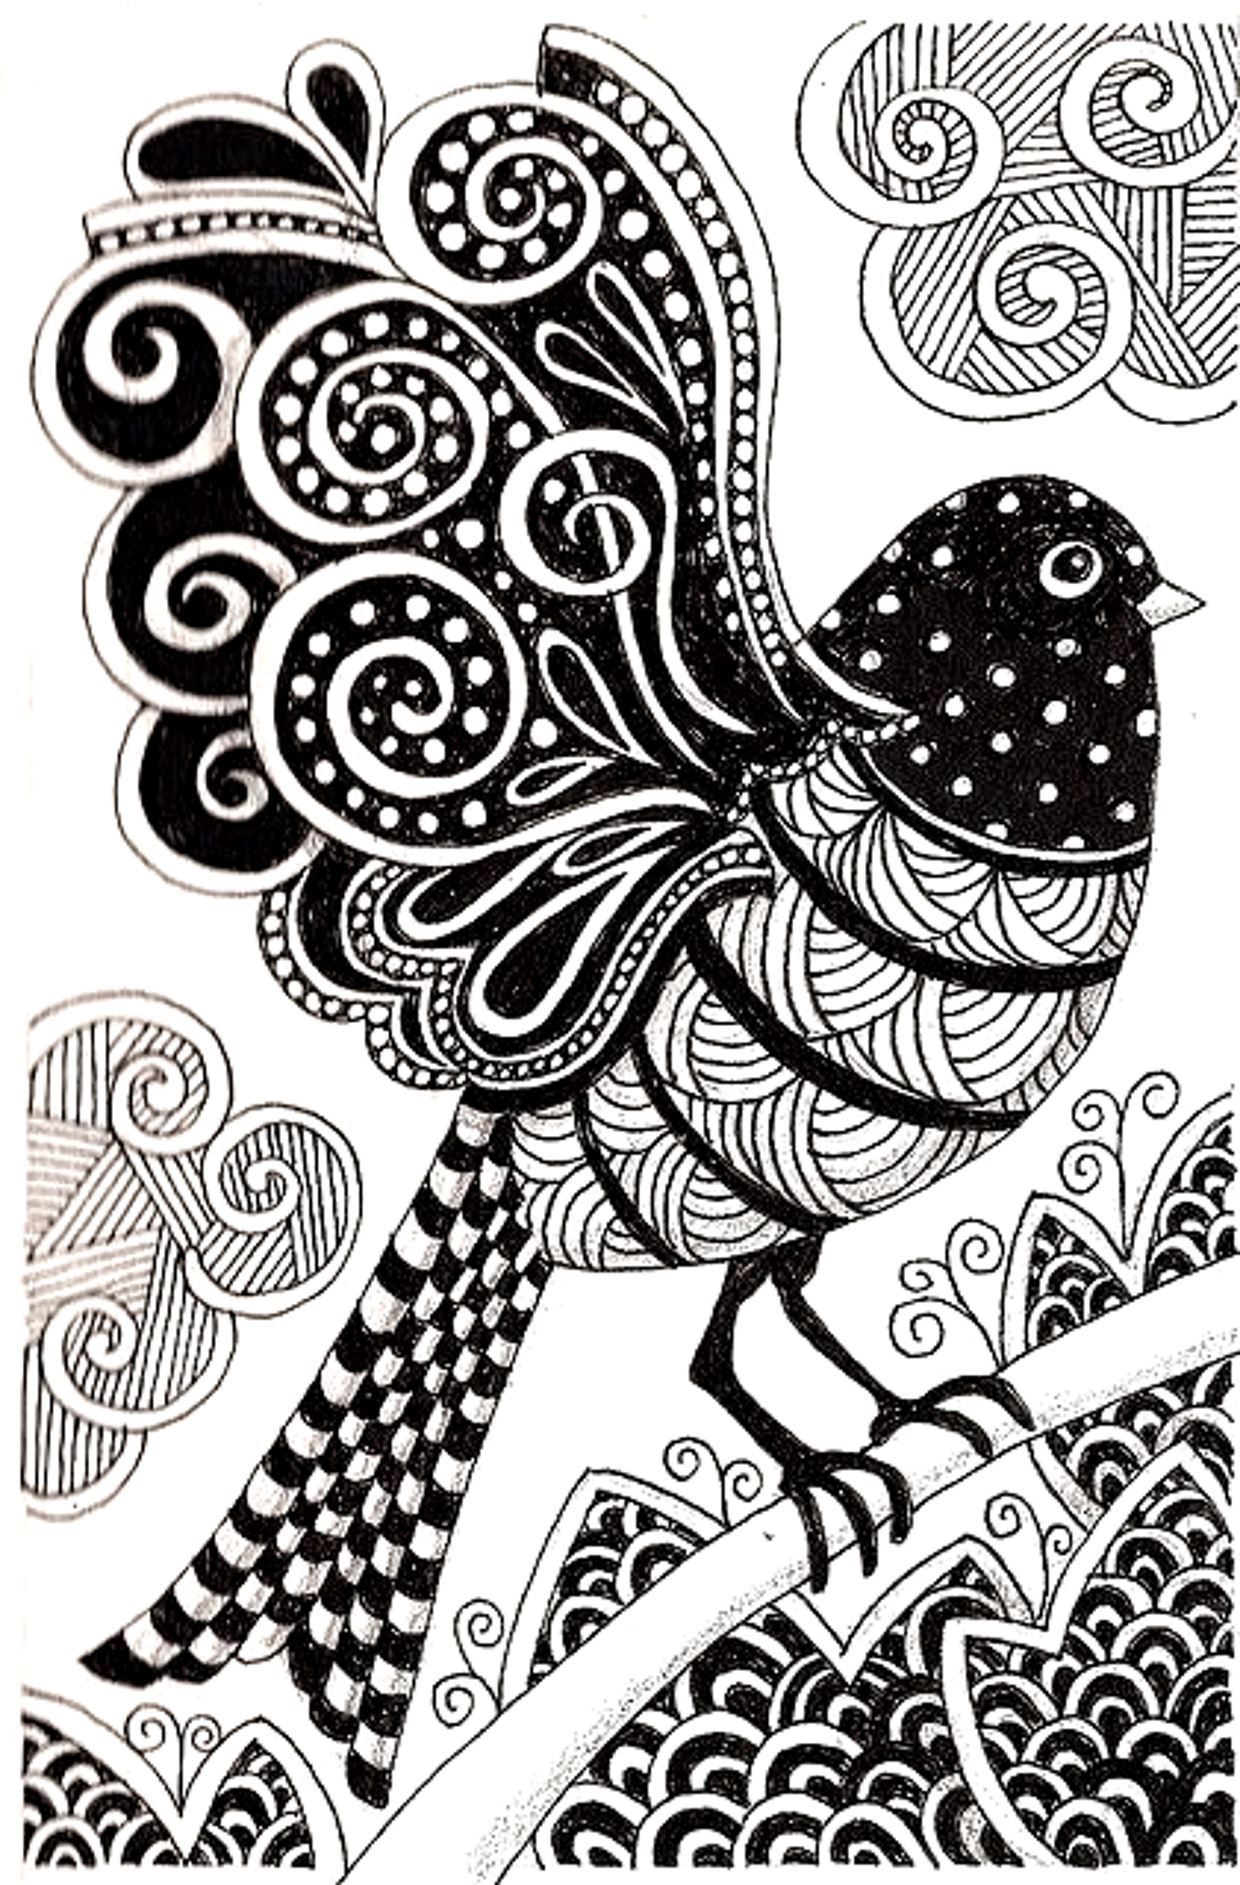 Dark bird | Animals - Coloring pages for adults | JustColor